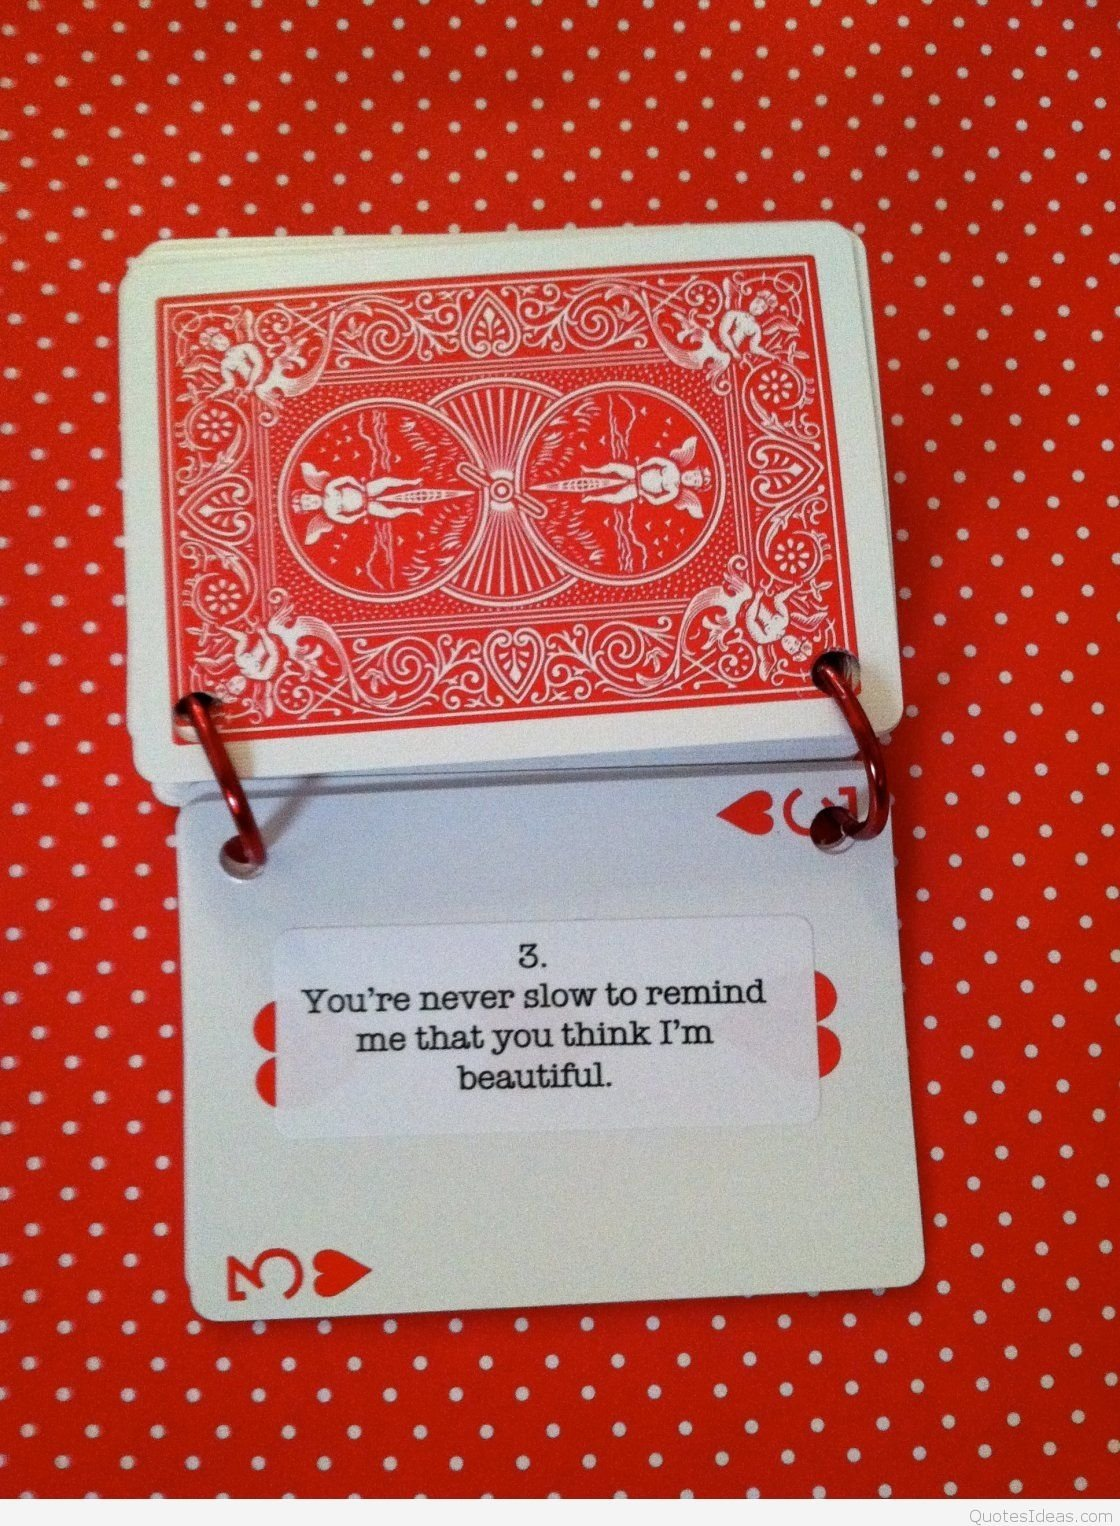 10 Unique Cute Valentines Ideas For Your Boyfriend cute happy valentines day wishes for him her 2016 1 2020